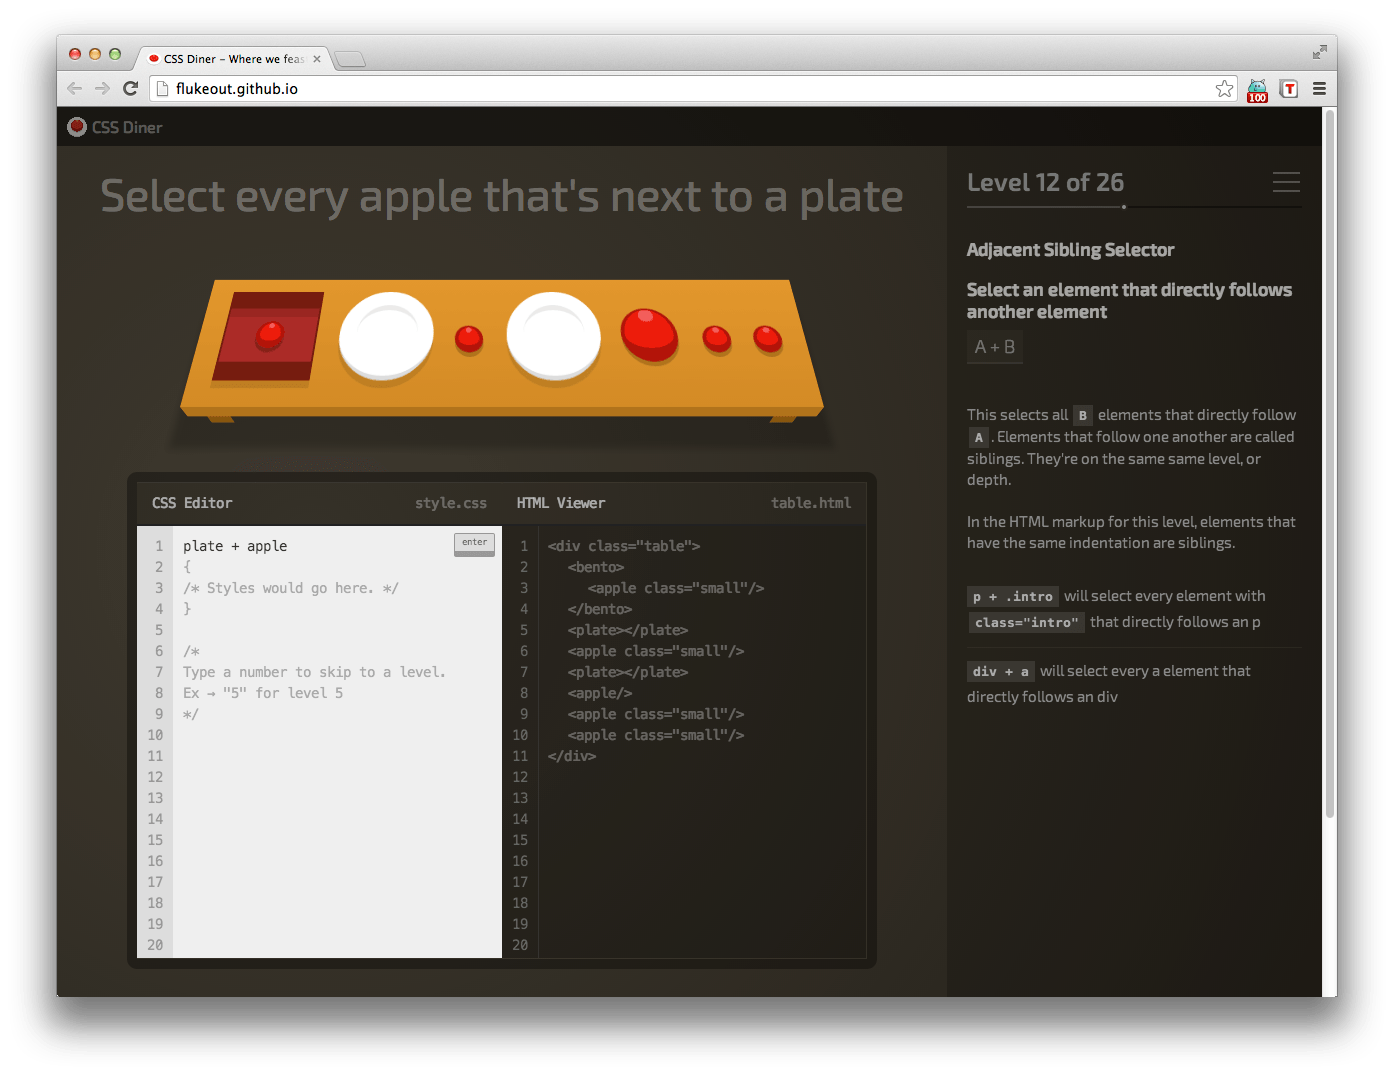 css-diner